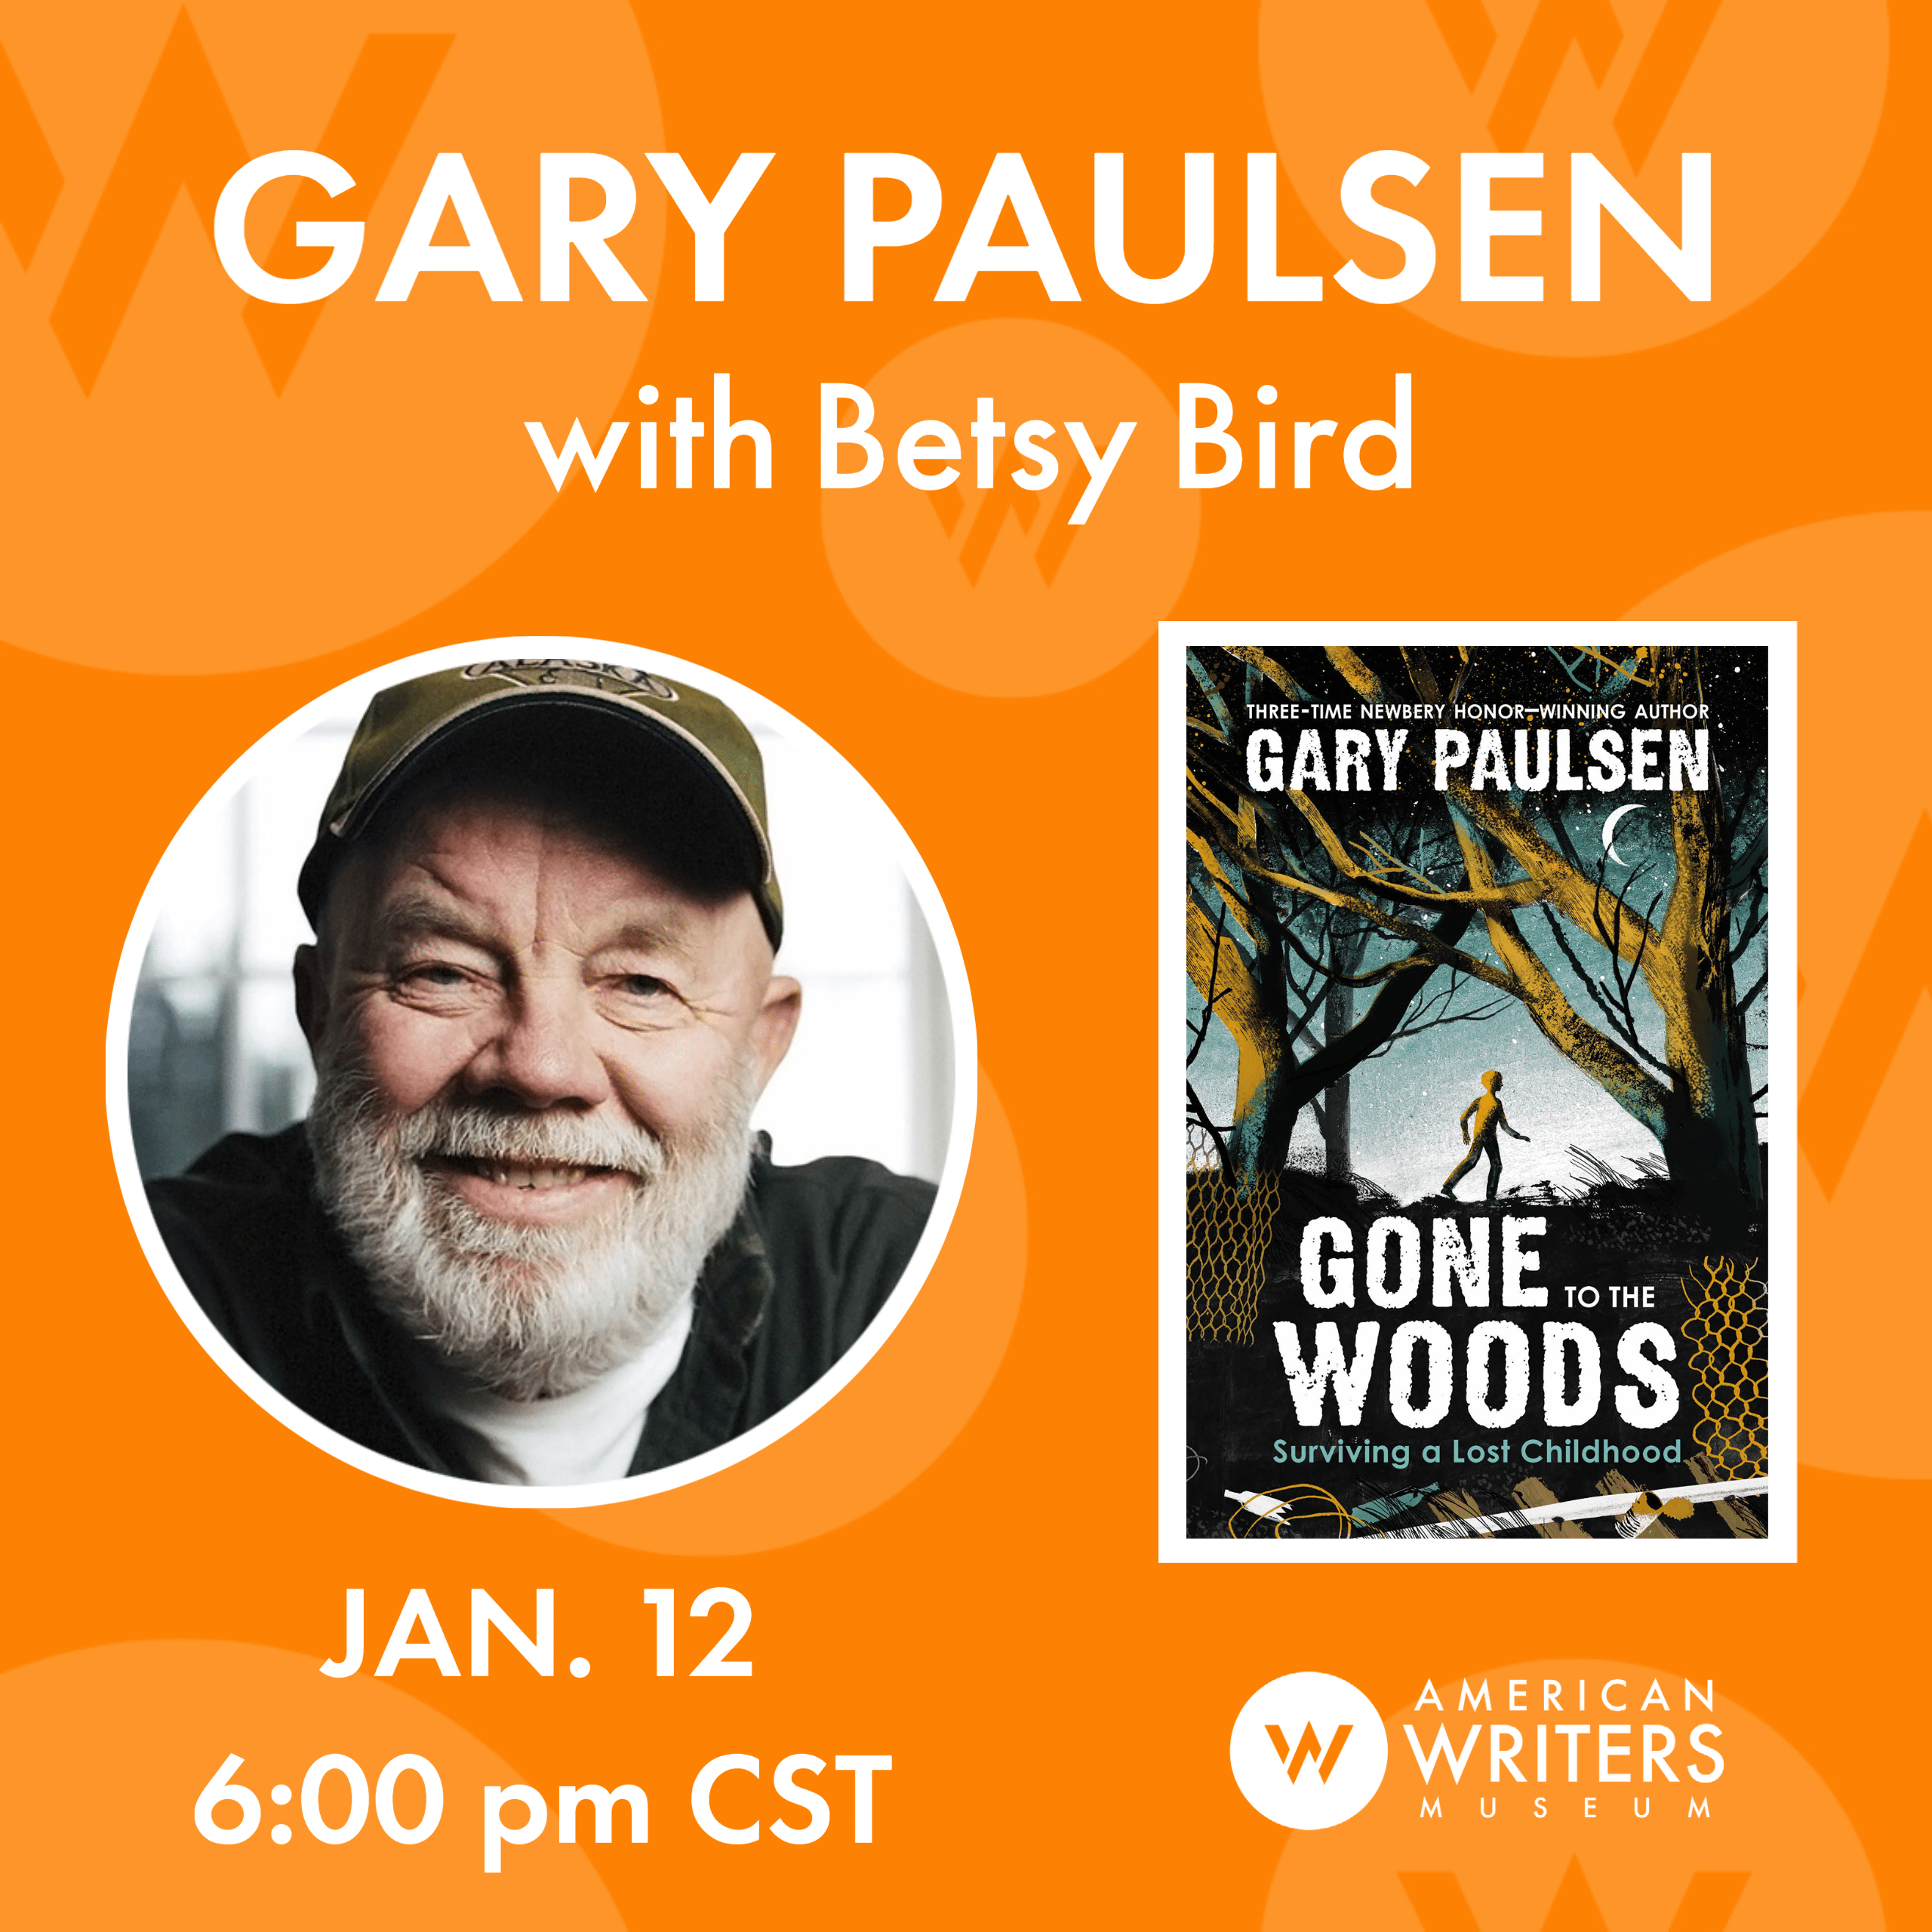 American Writers Museum presents a conversation with Gary Paulsen about his new book Gone to the Woods on January 12, 2021 at 6 pm Central